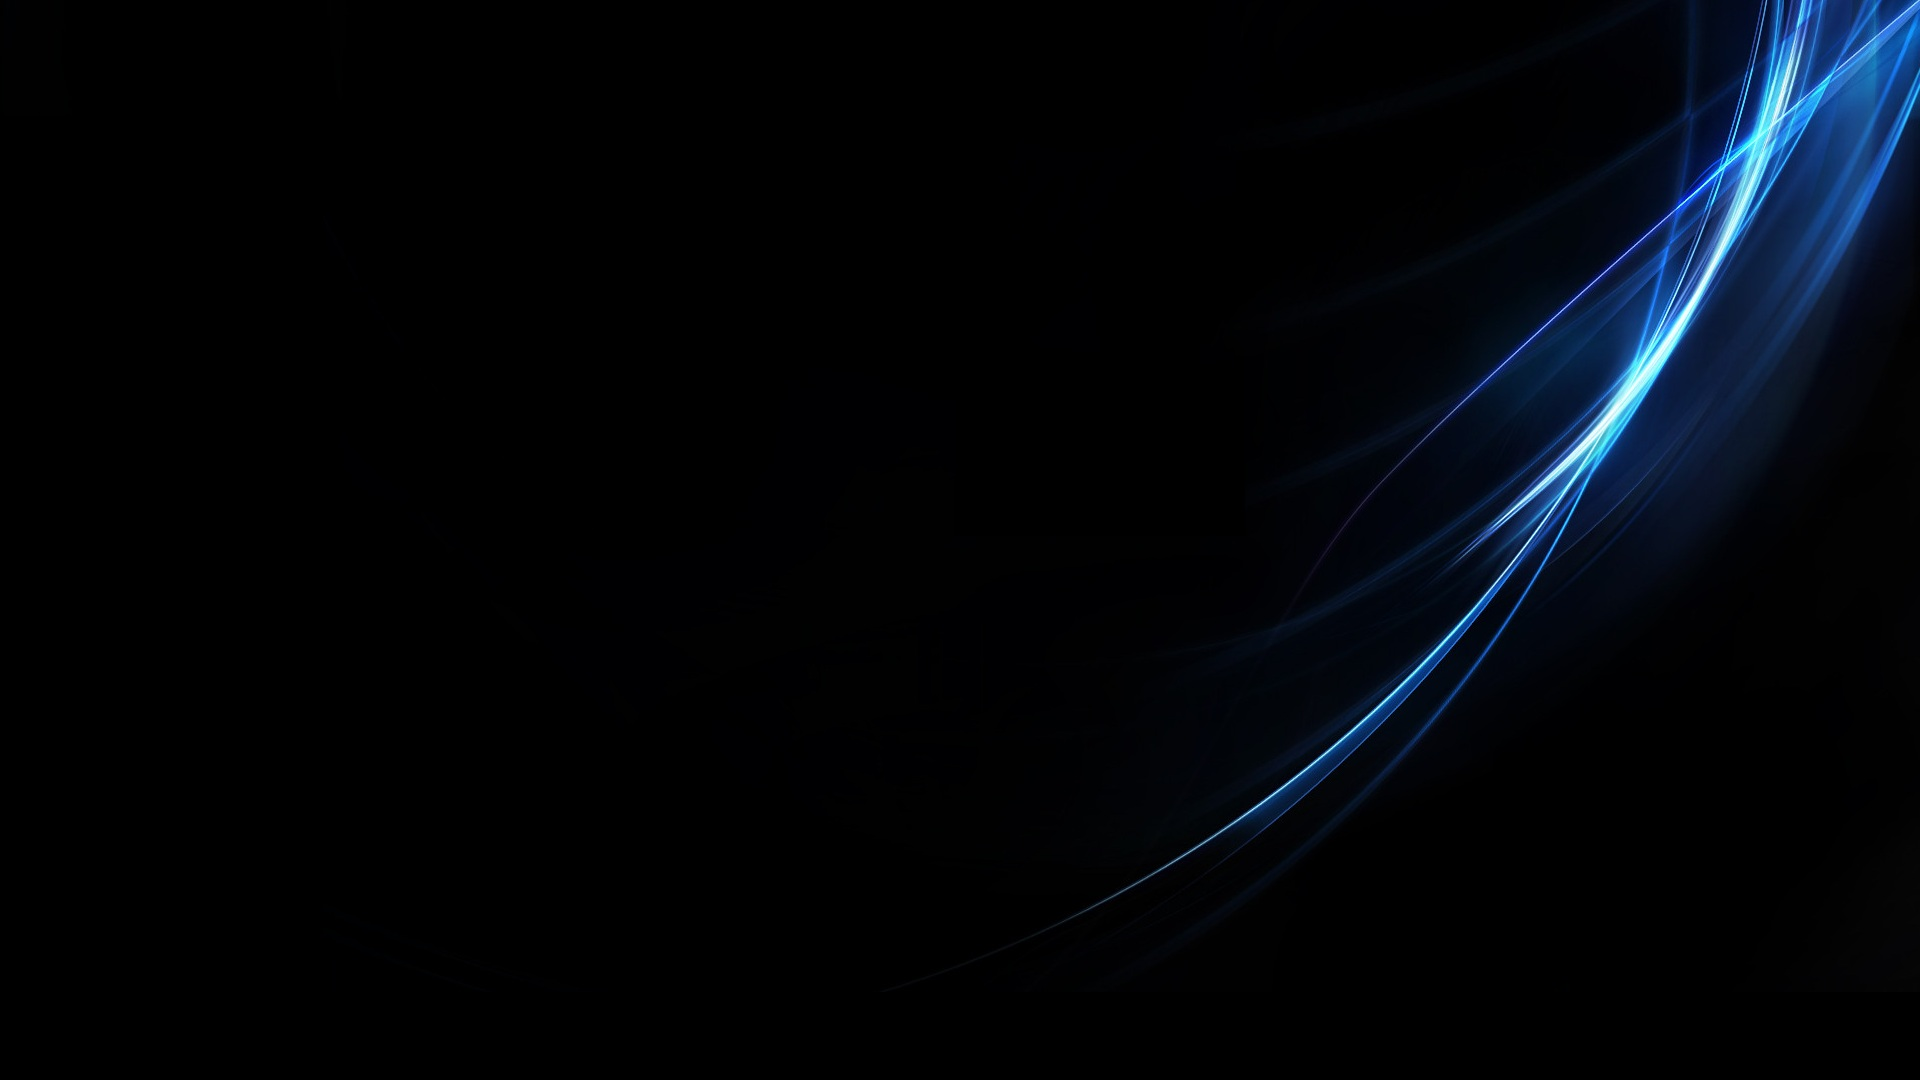 Hd Wallpaper 1920x1080 Black Blue: Black And Blue HD Wallpapers